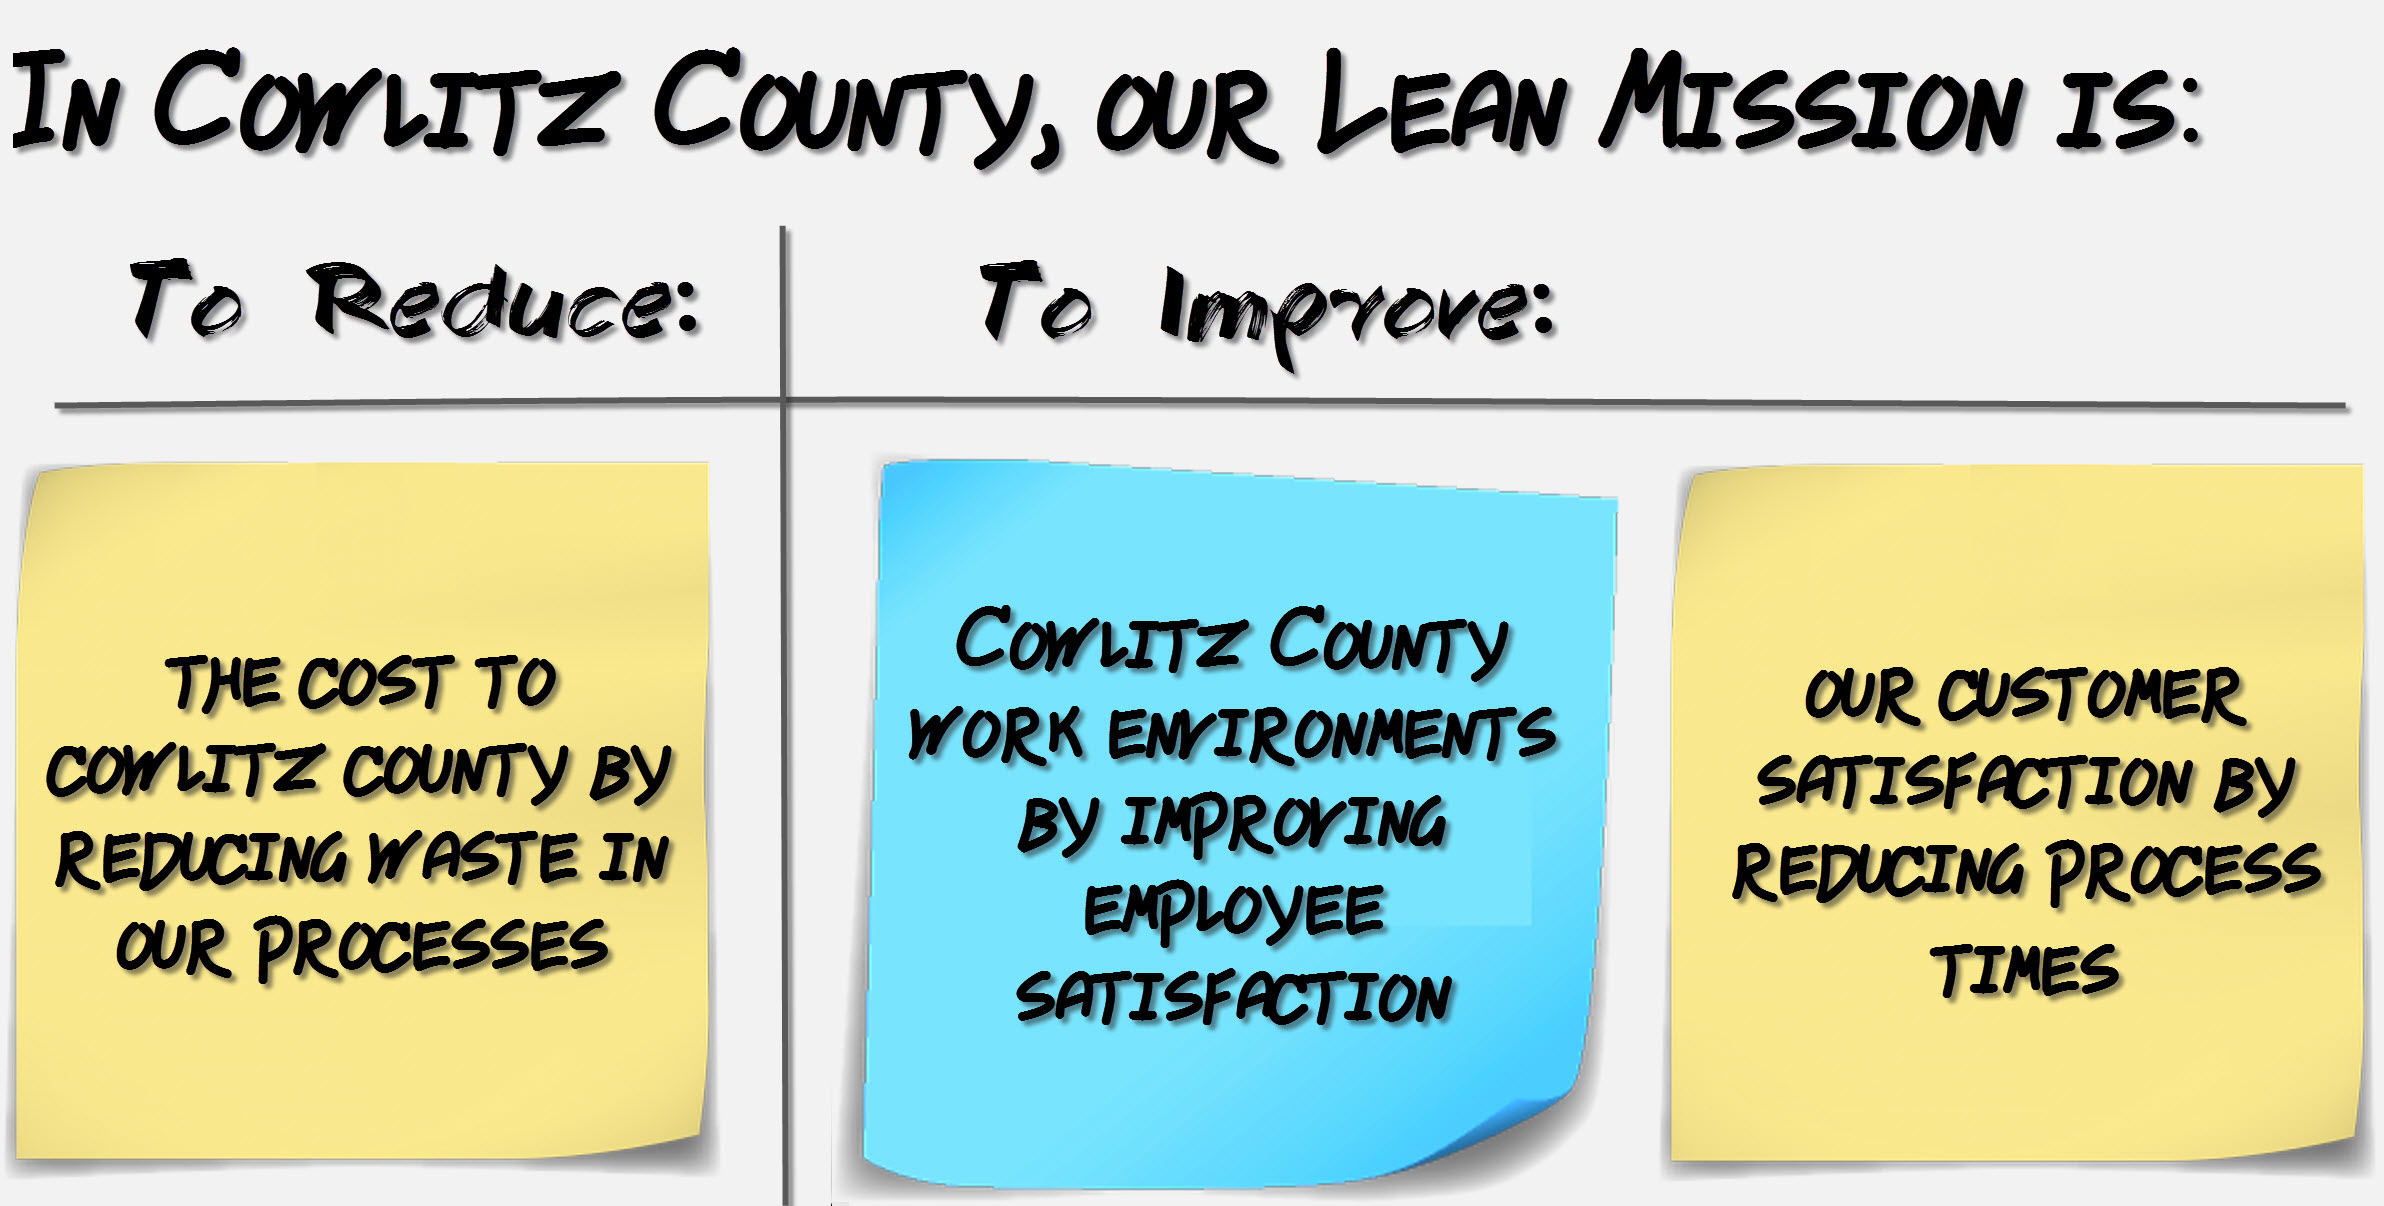 Mission Statement Lean Cowlitz County